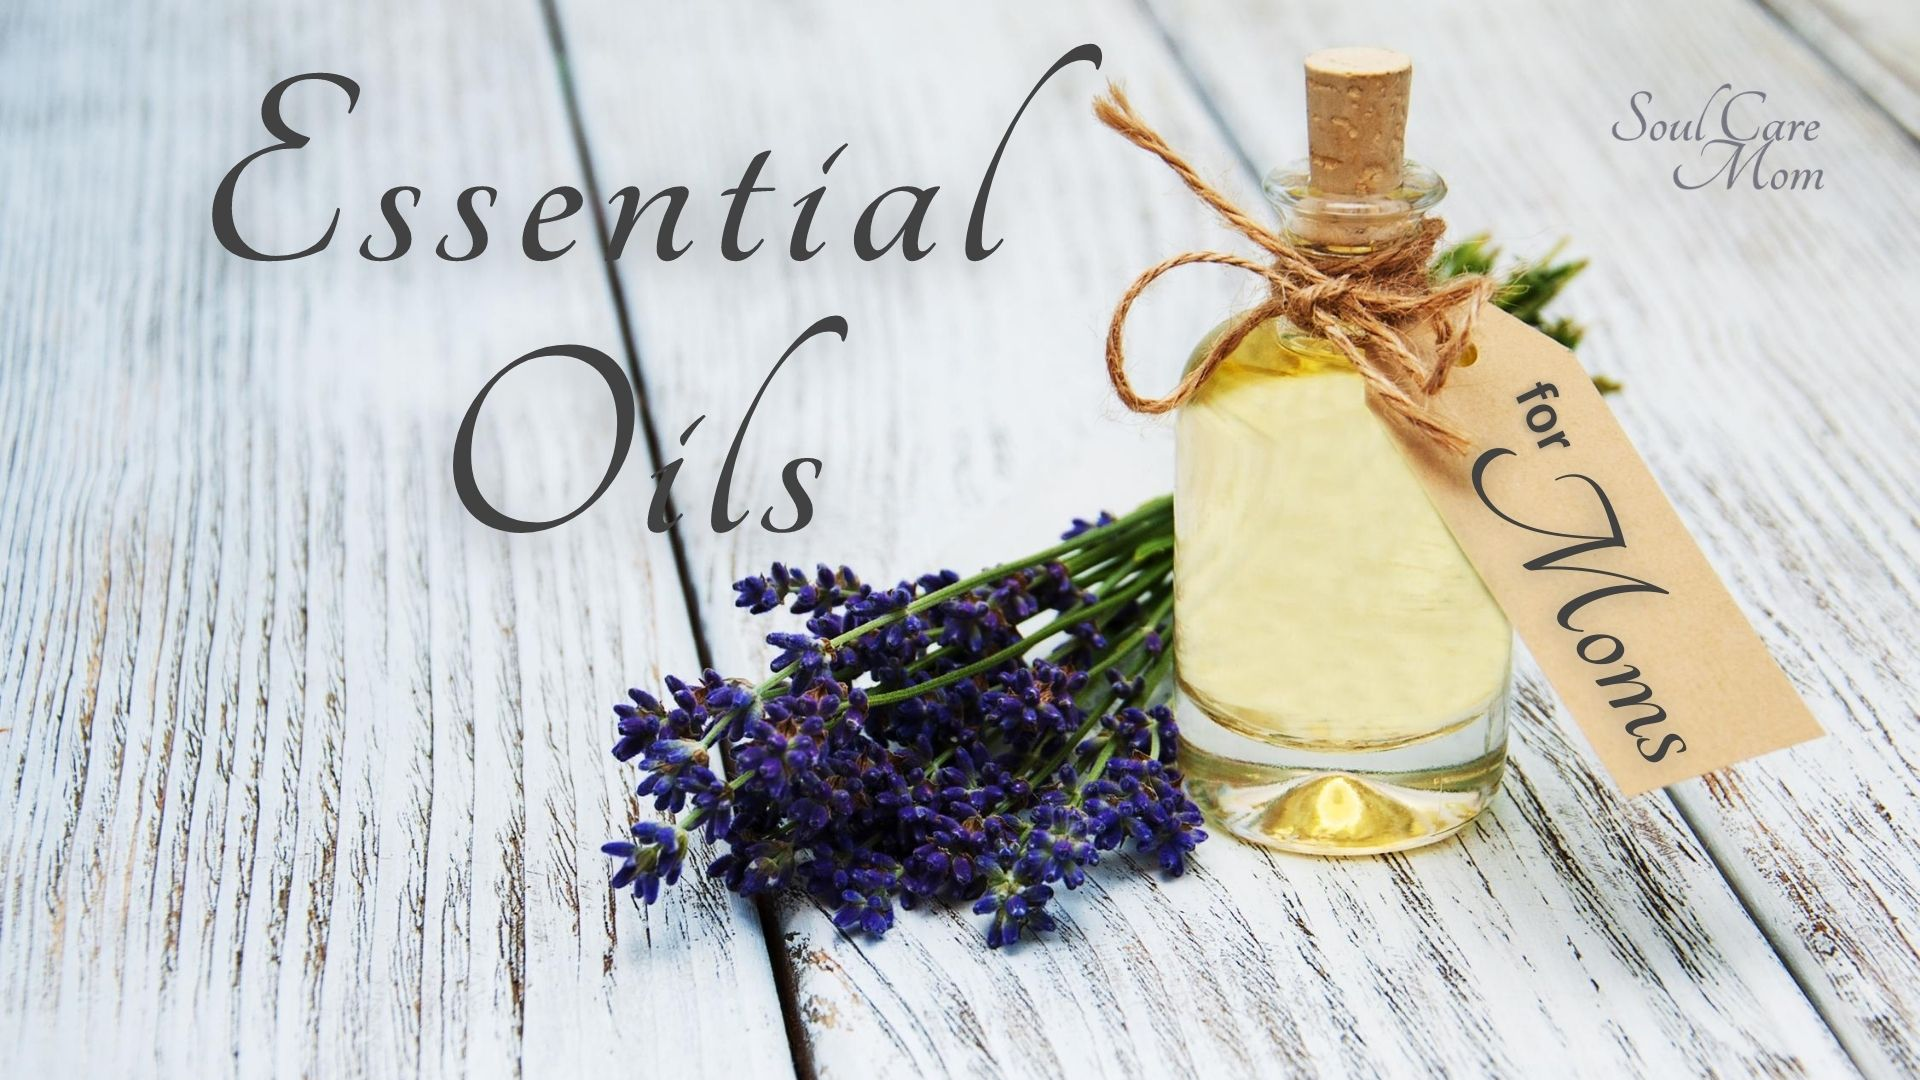 Essential Oils for Moms - Soul Care Mom